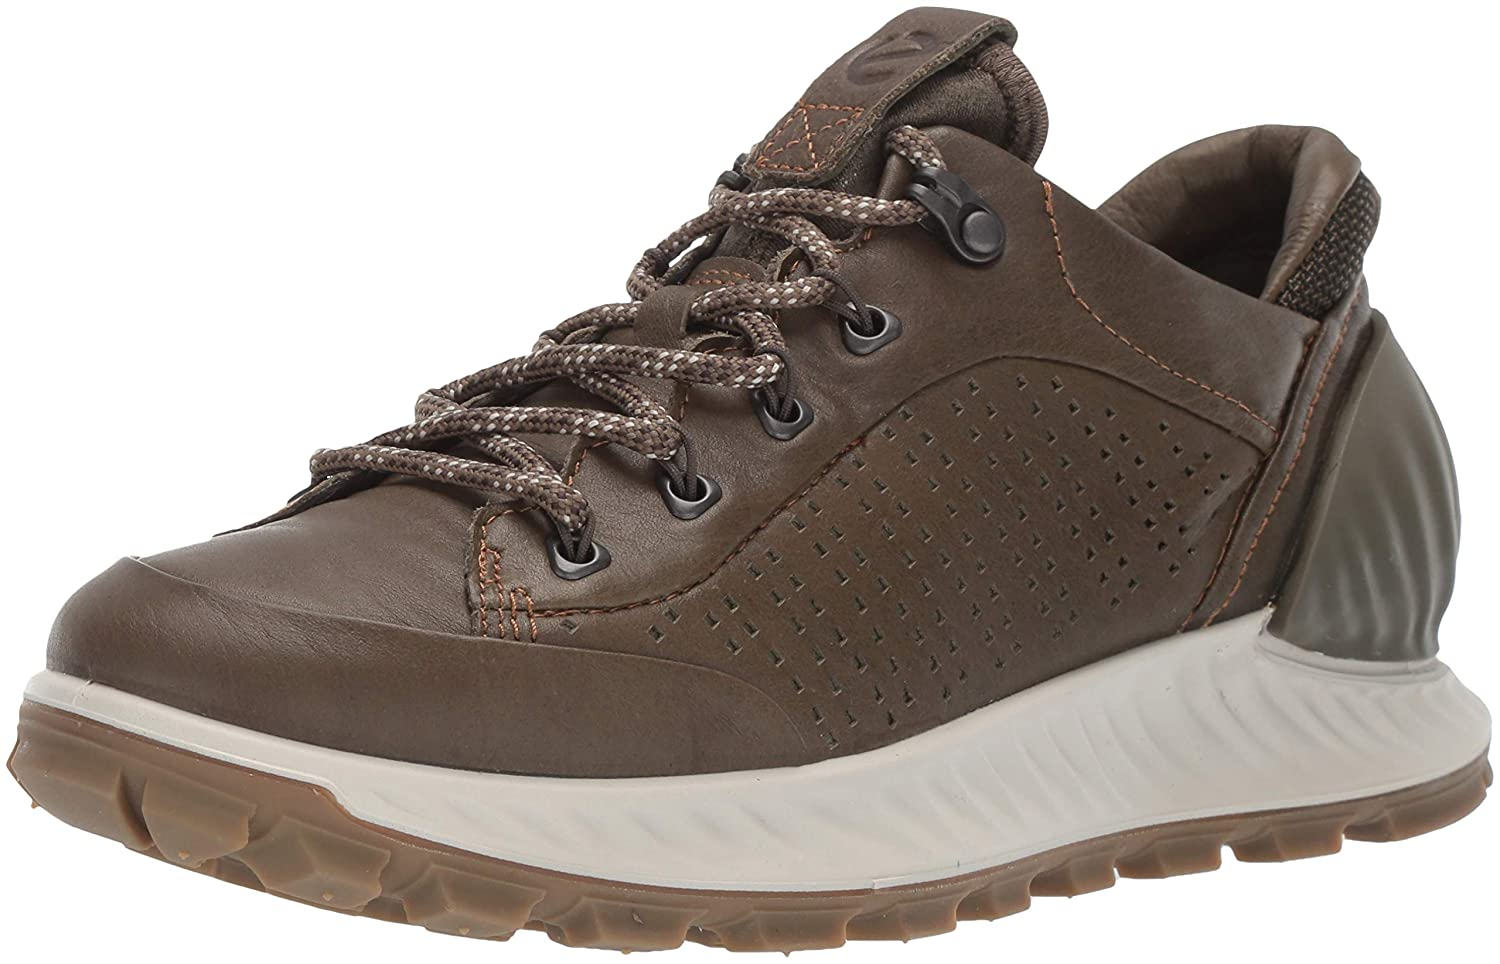 Deep Forest ECCO Mens Exostrike Low Hiking shoes